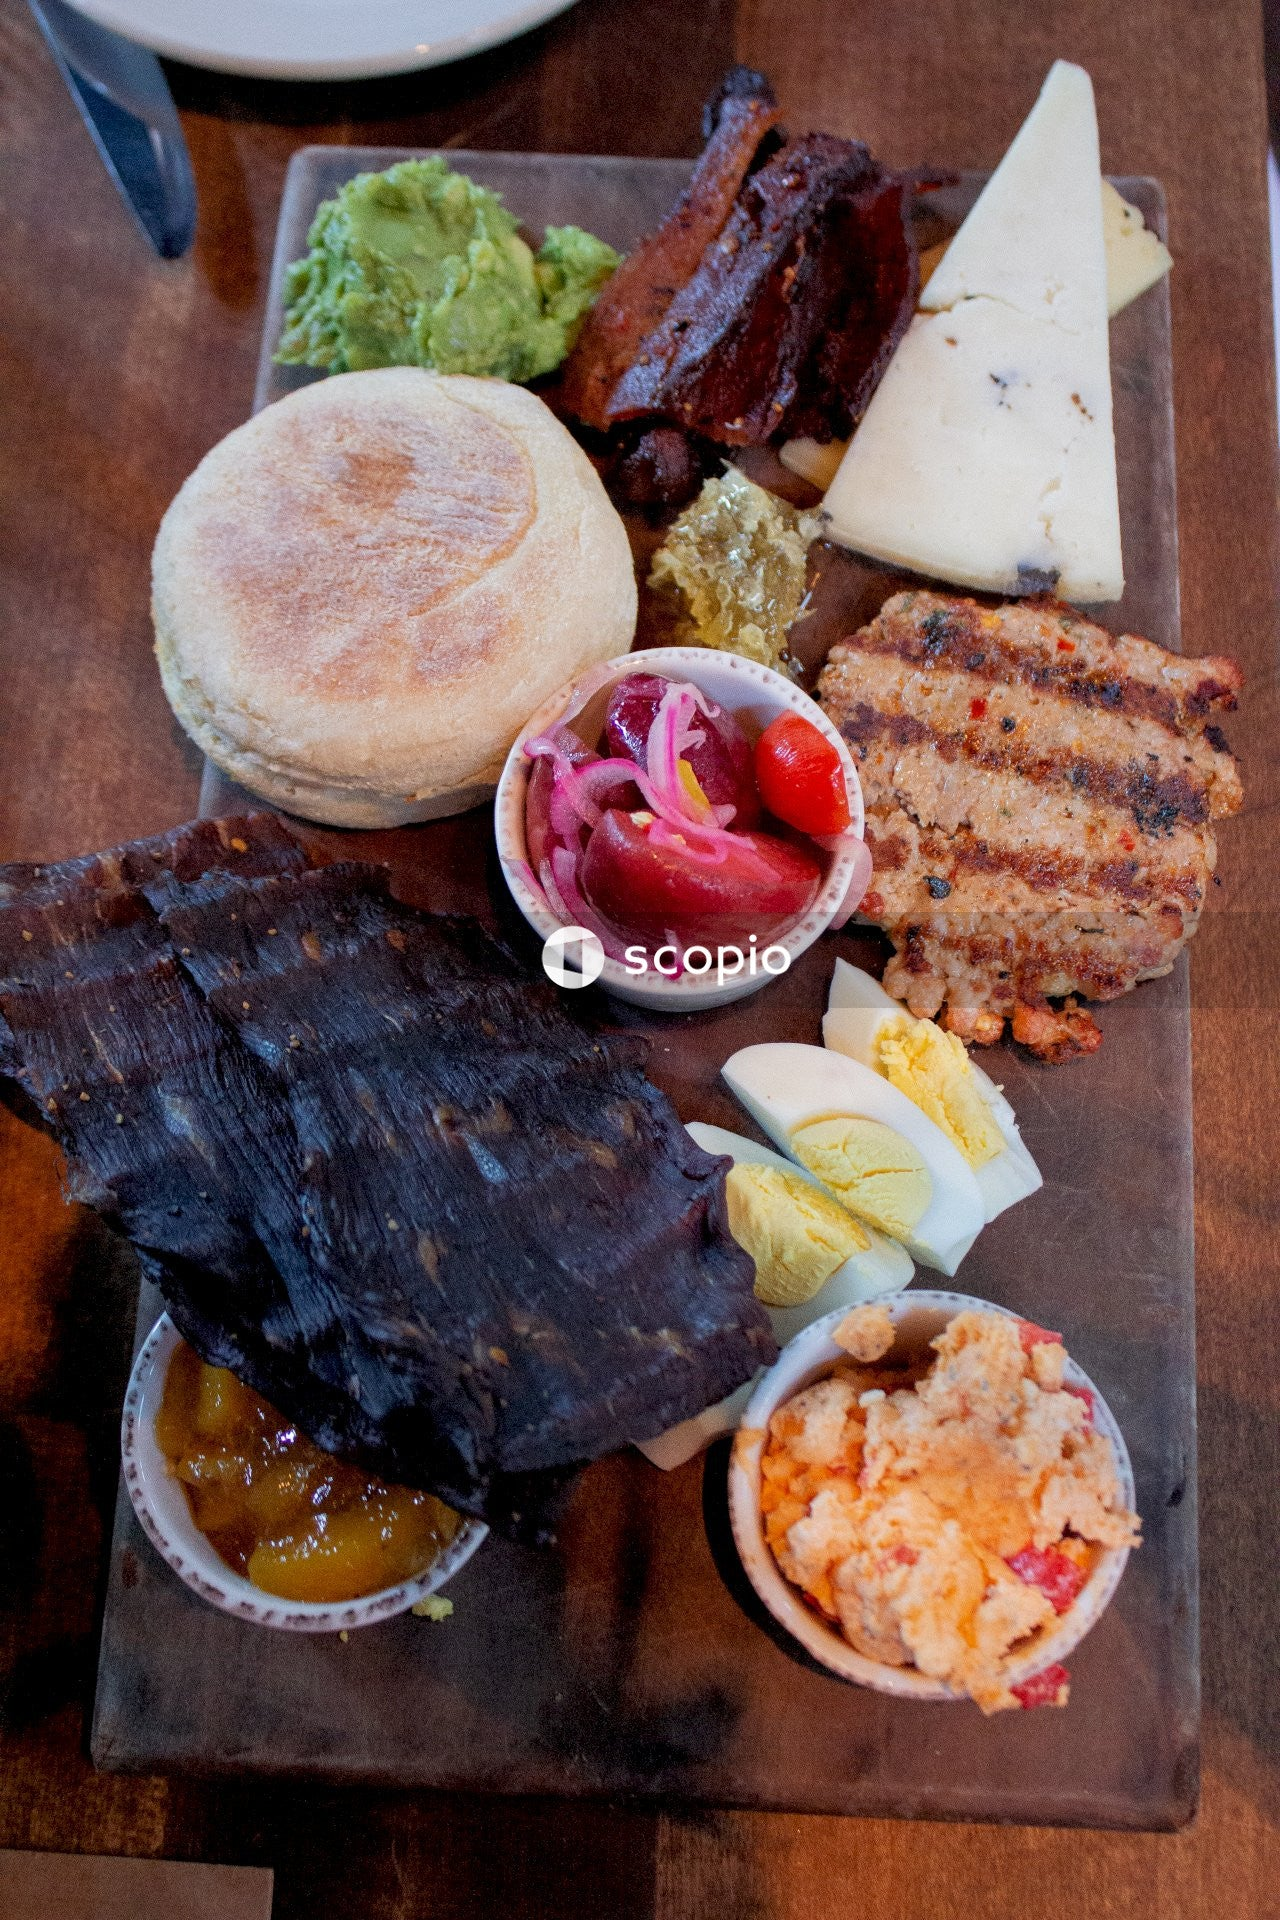 Steak near sliced boiled eggs, burger, cheese, and guacamole on wooden chopping board